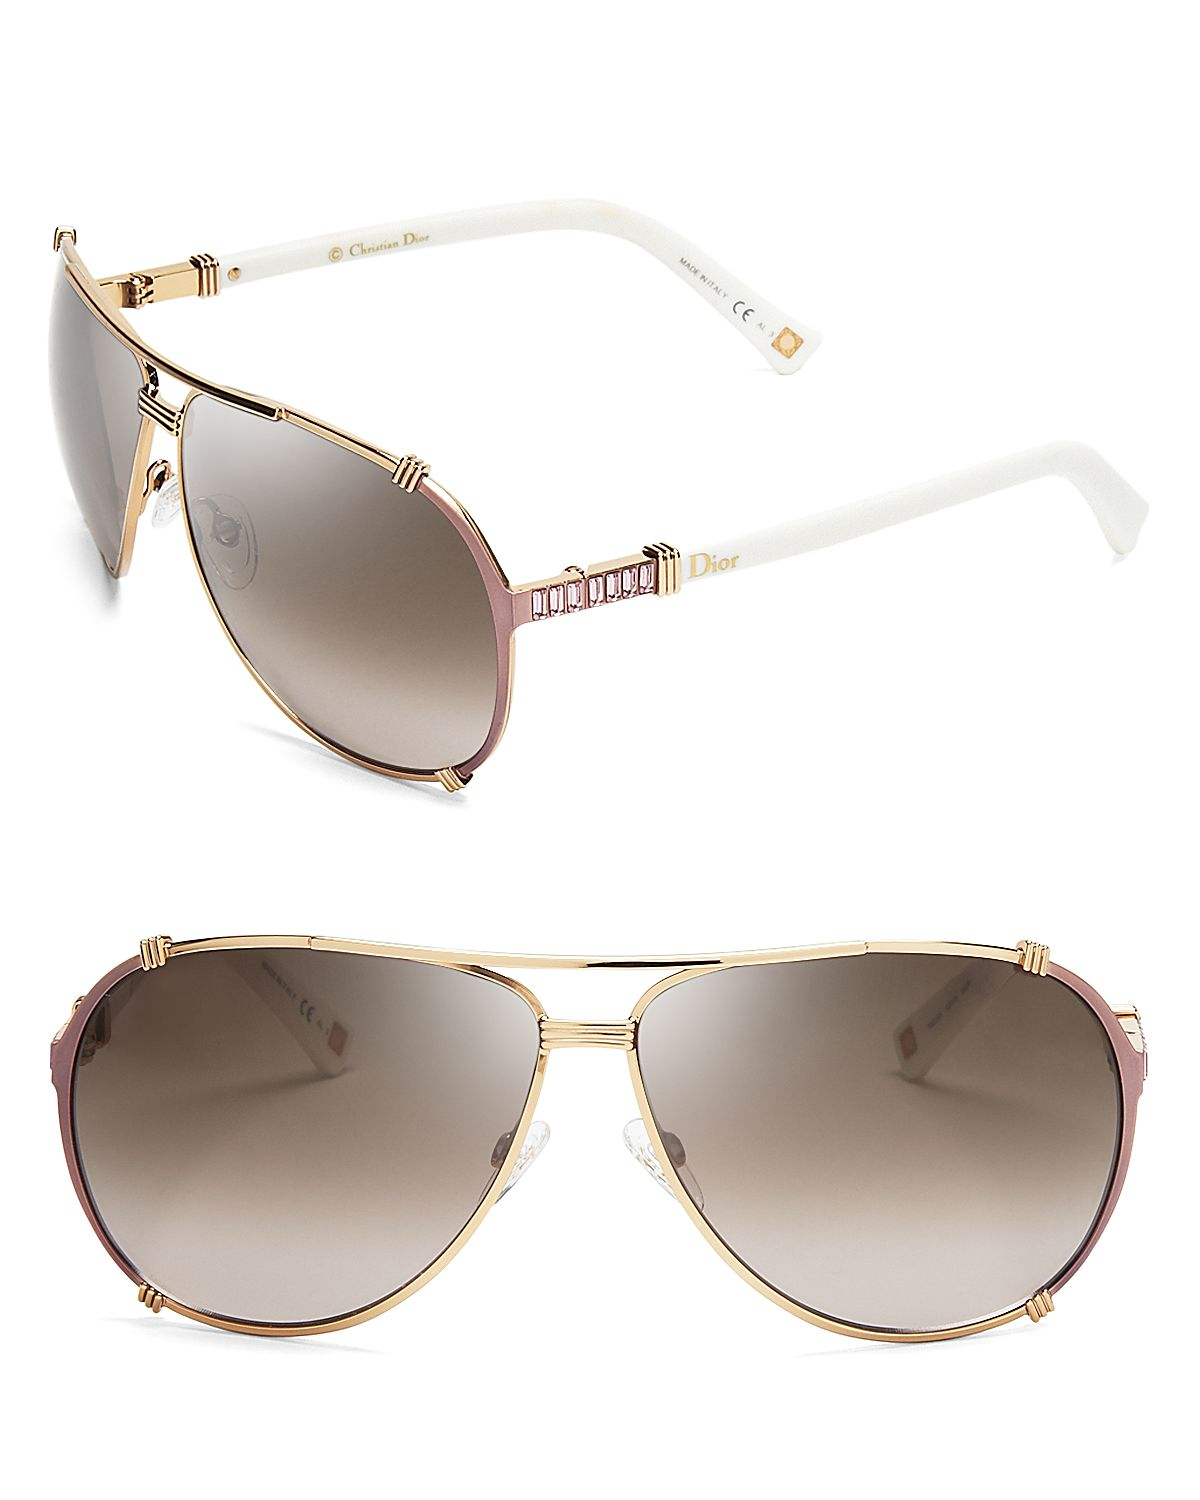 Dior Gold Frame Sunglasses : Dior Chicago 2 Aviator Sunglasses in Gold (Gold/Brown ...